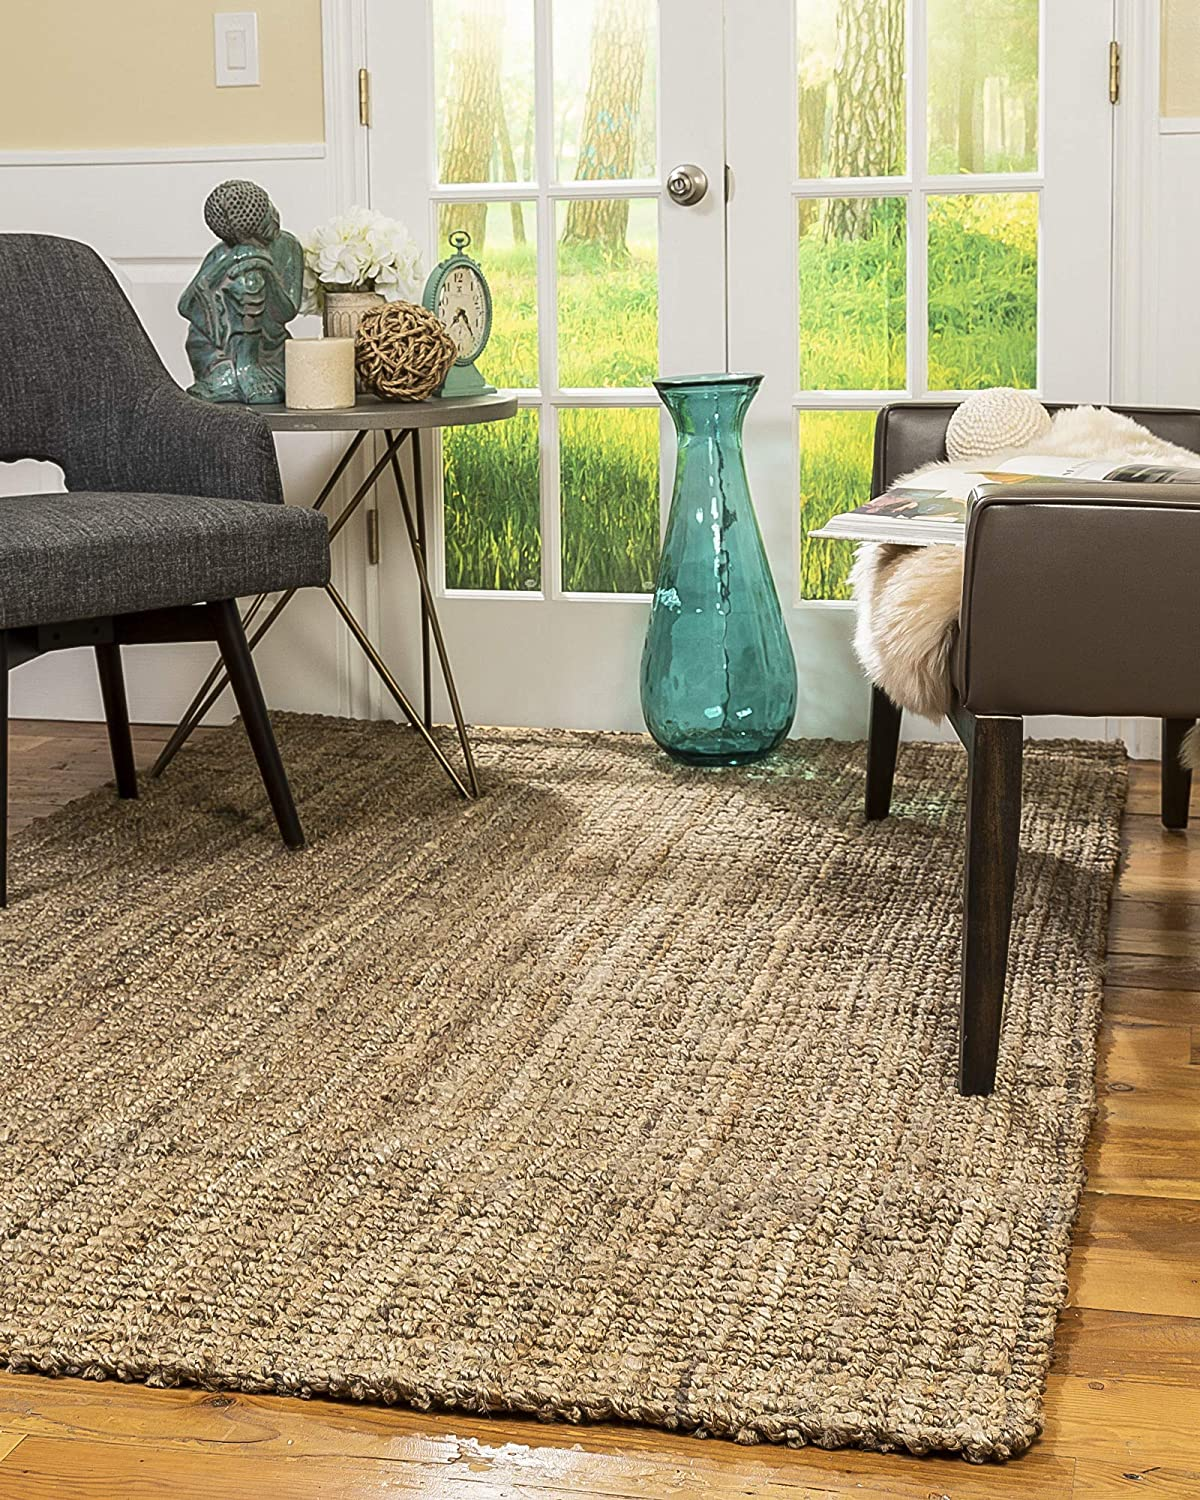 Gideon Handmade Chunky Jute Rug by Natural Area Rugs from Amazon.com | Designer Finds: Bringing Natural Elements Into Your Home | Jade and Sage Interior Design | eDesign Tribe Blogs